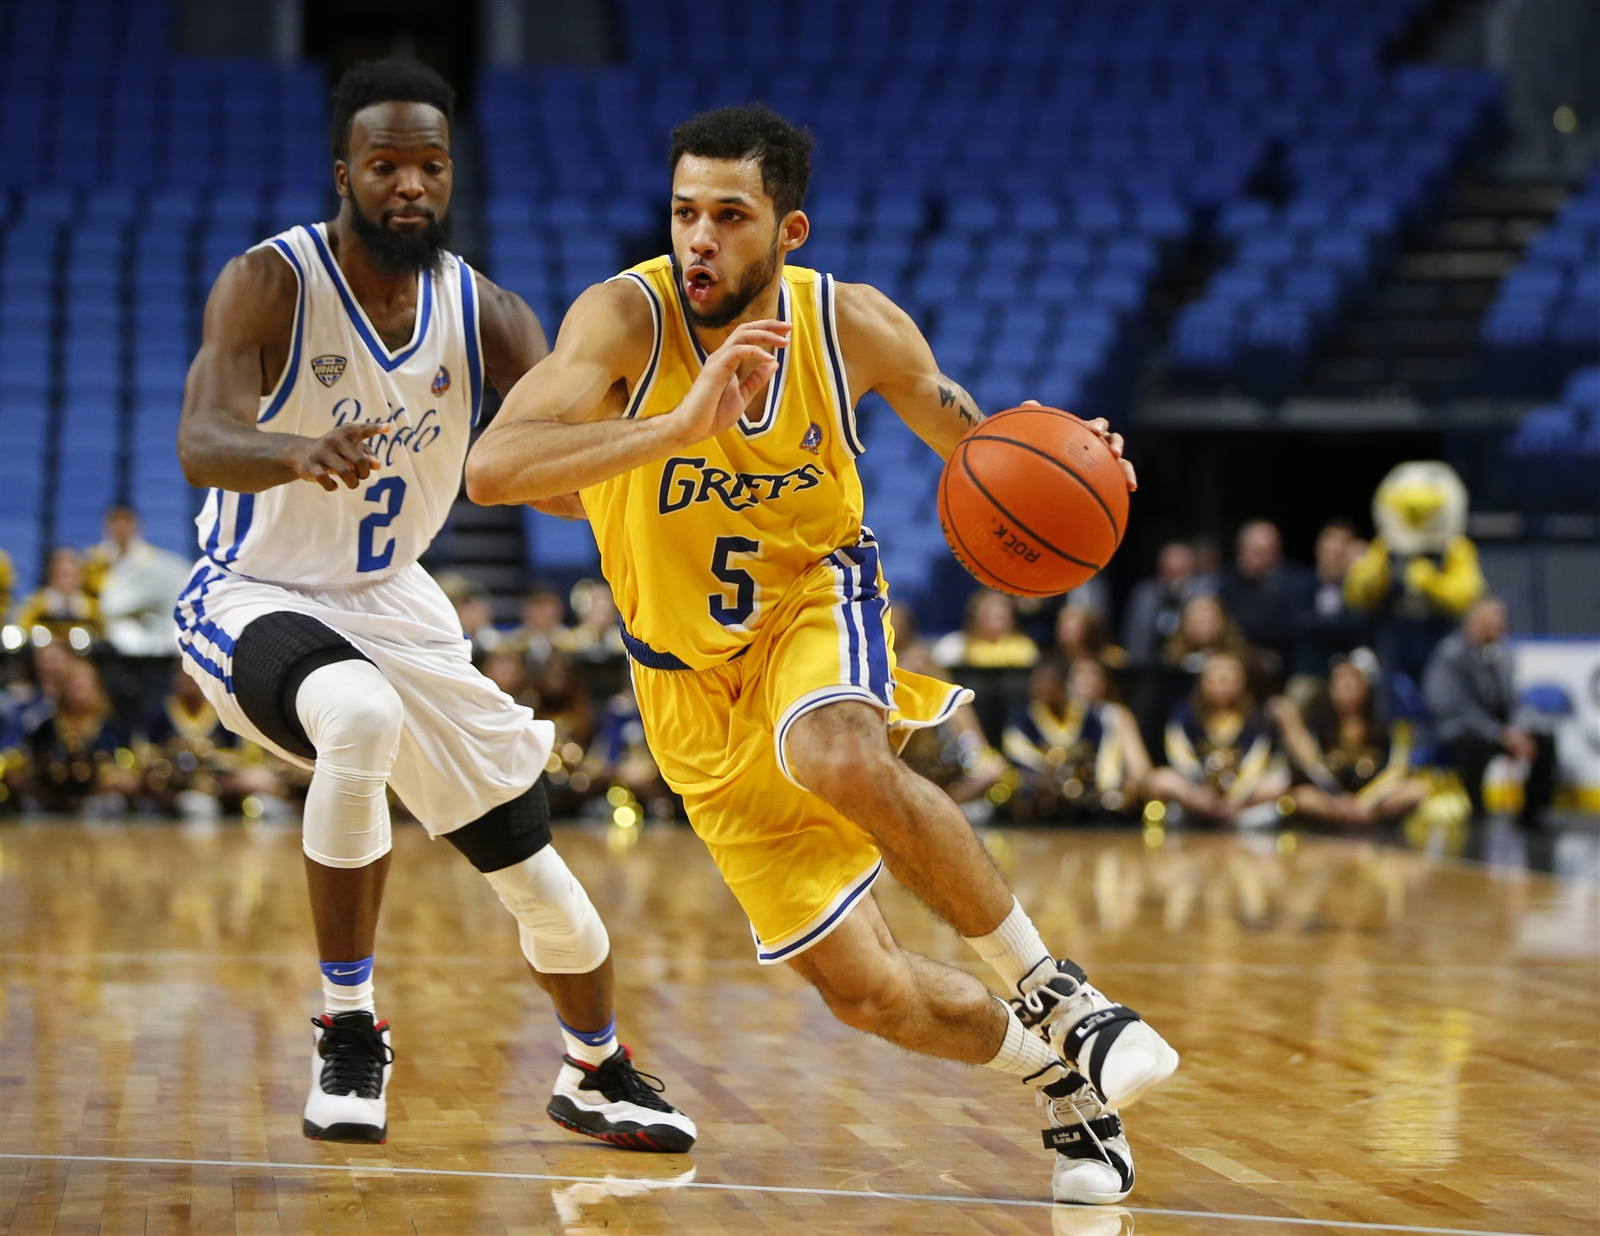 Canisius' Kassius Robertson dribbles against UB at the Big 4 Classic. (Harry Scull Jr./Buffalo News)